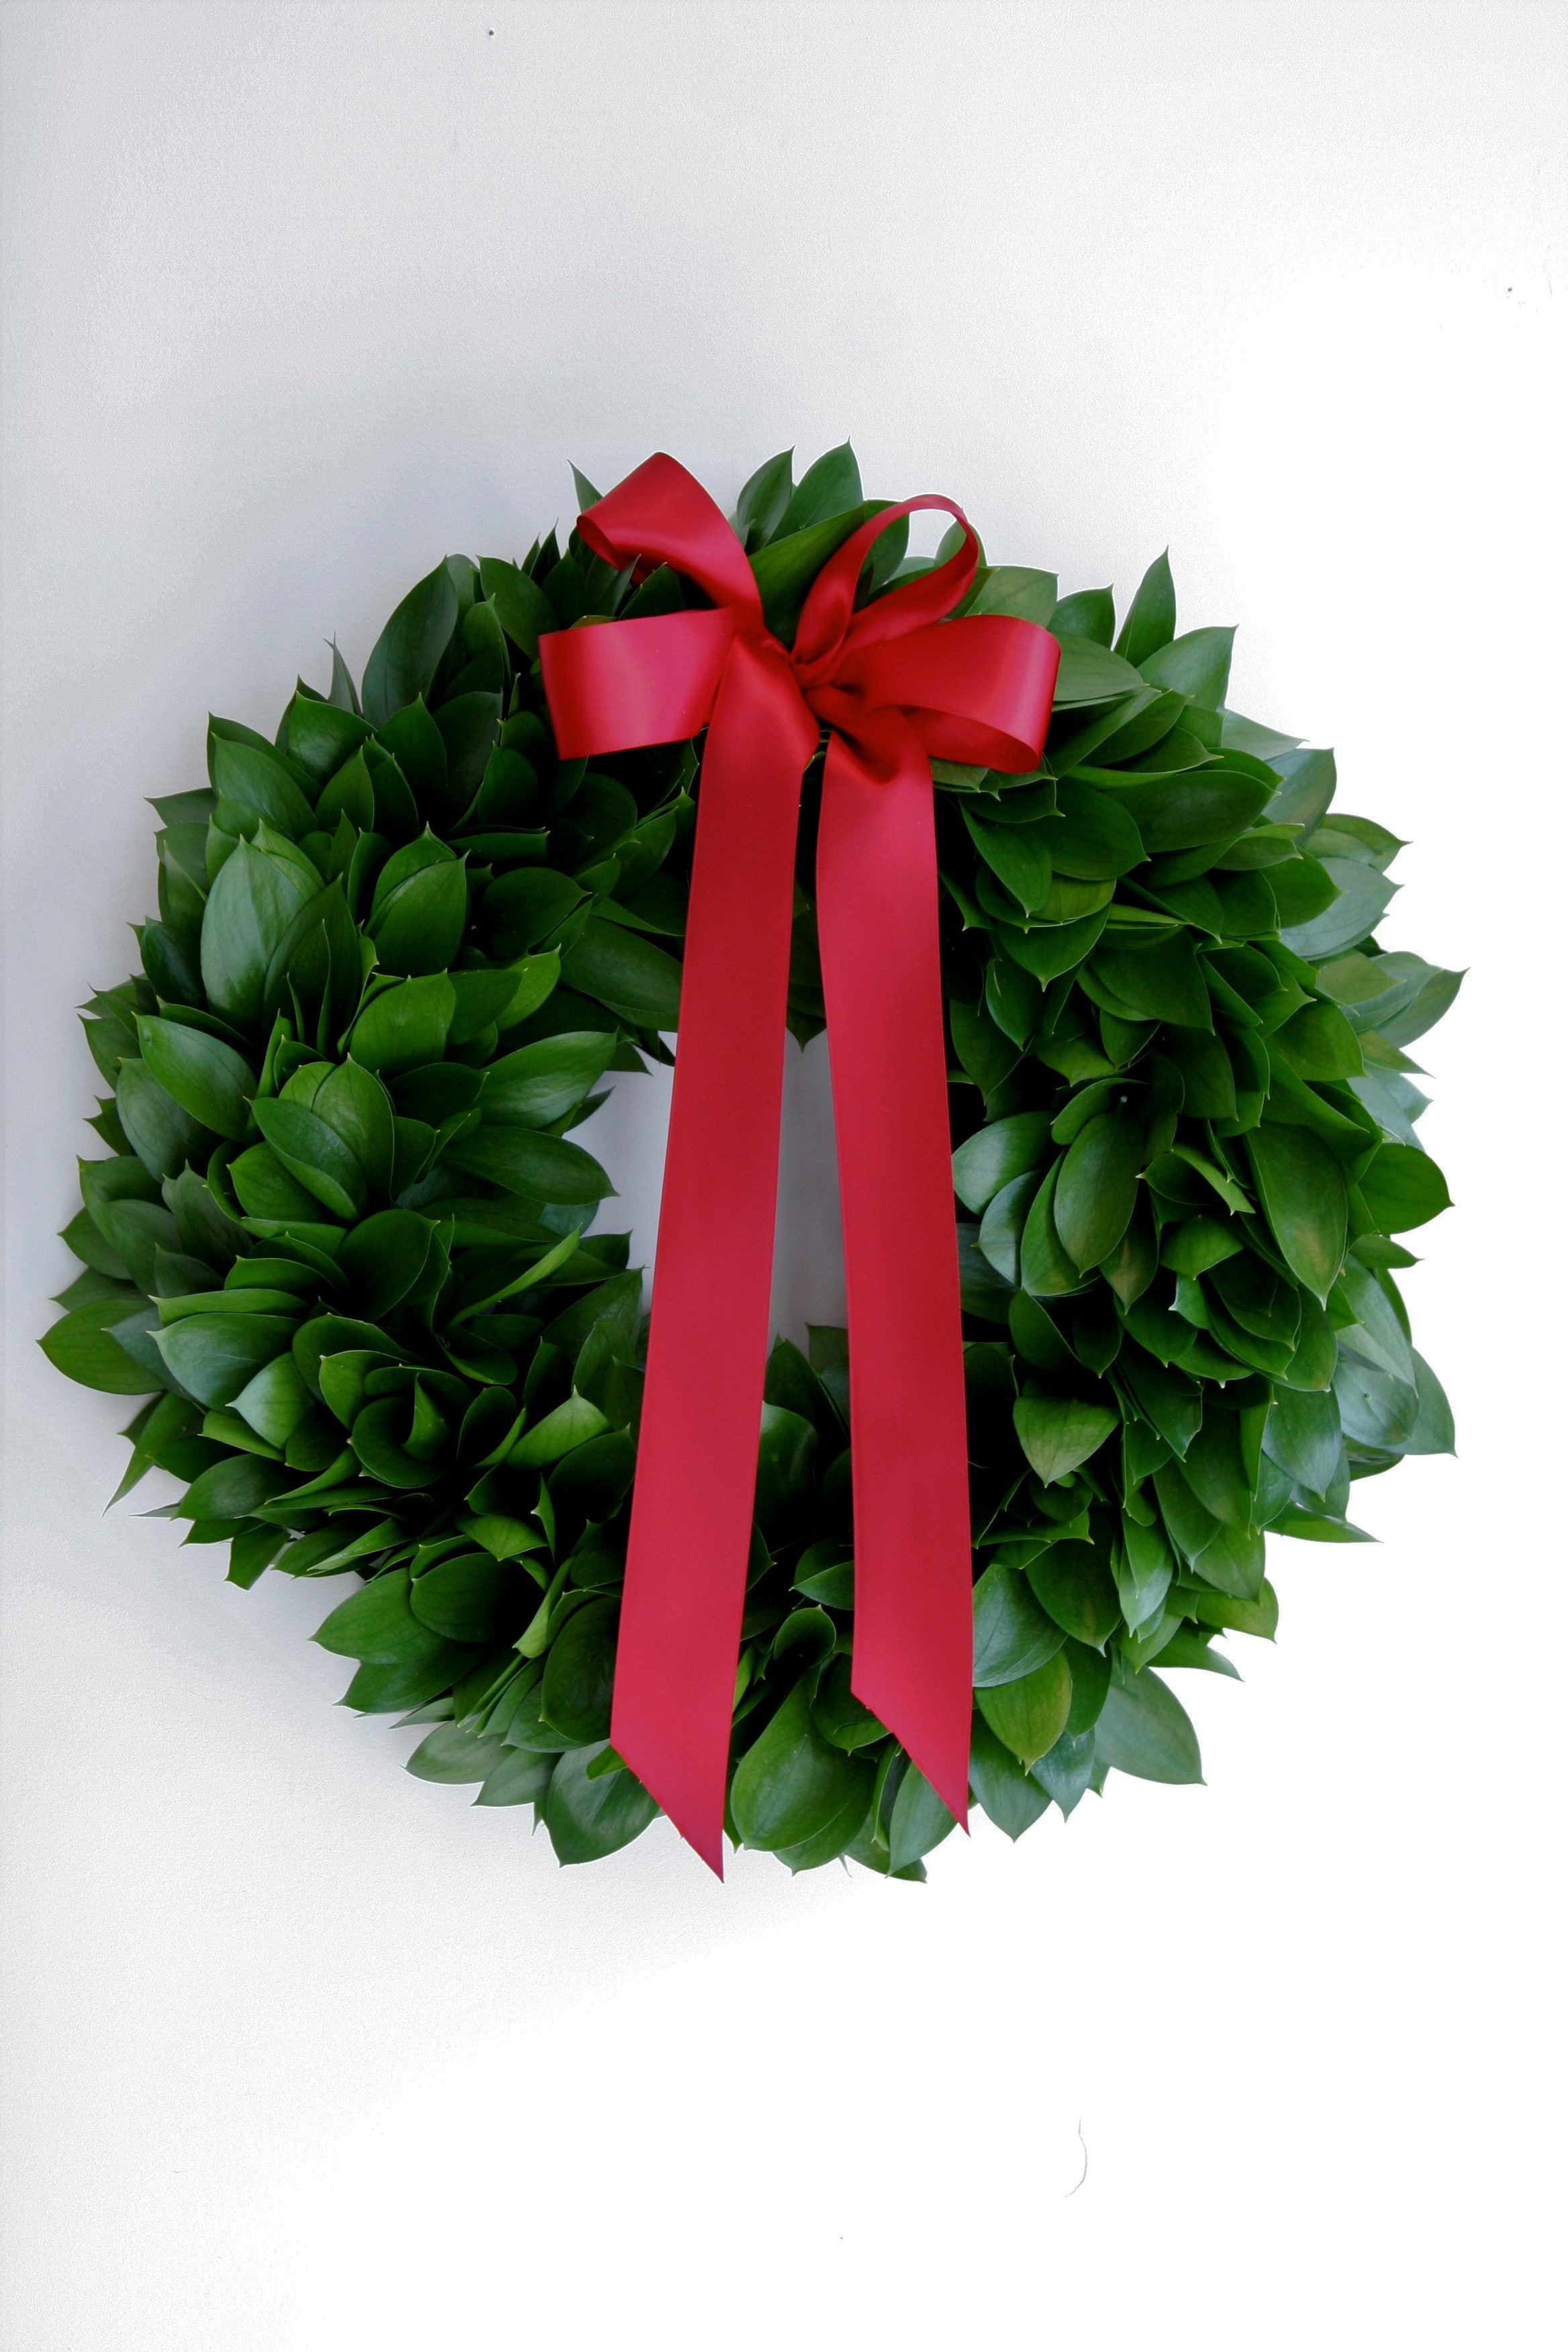 Classical Festive Foliage Wreaths in Florists Foam - Saturday 7th December 2019 - 10am-12pm